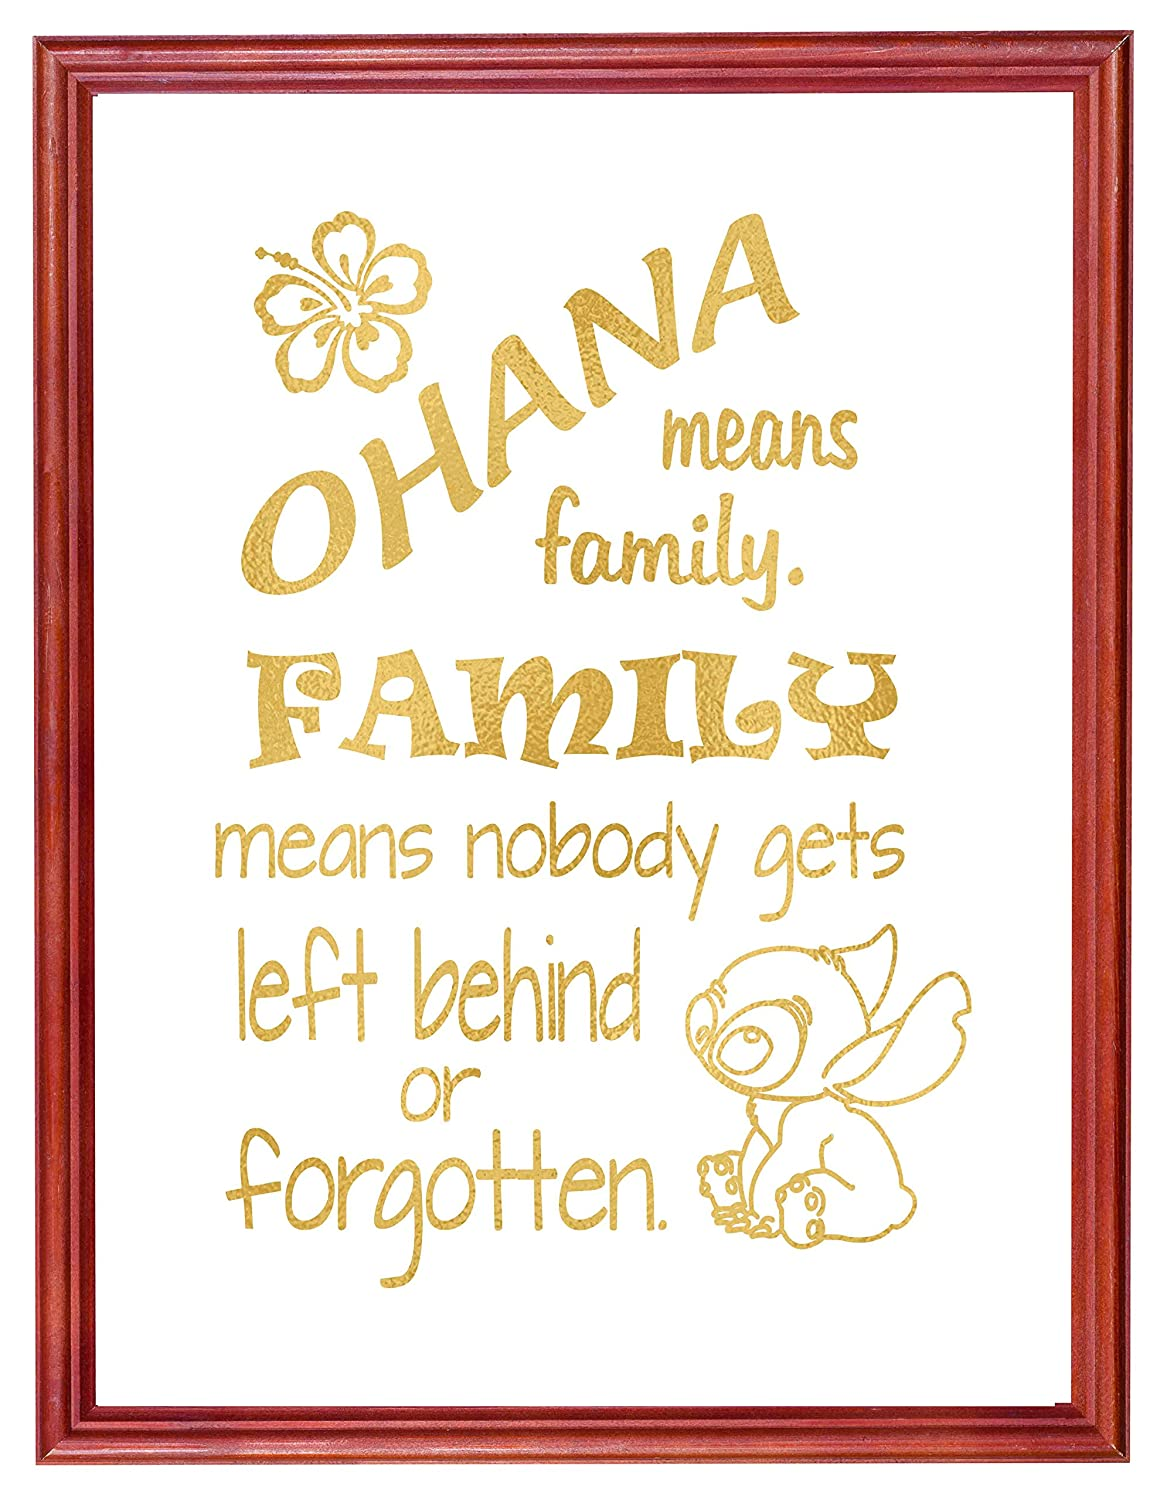 Amazon.com: Ohana Means Family - Inspired by Lilo and Stitch ...